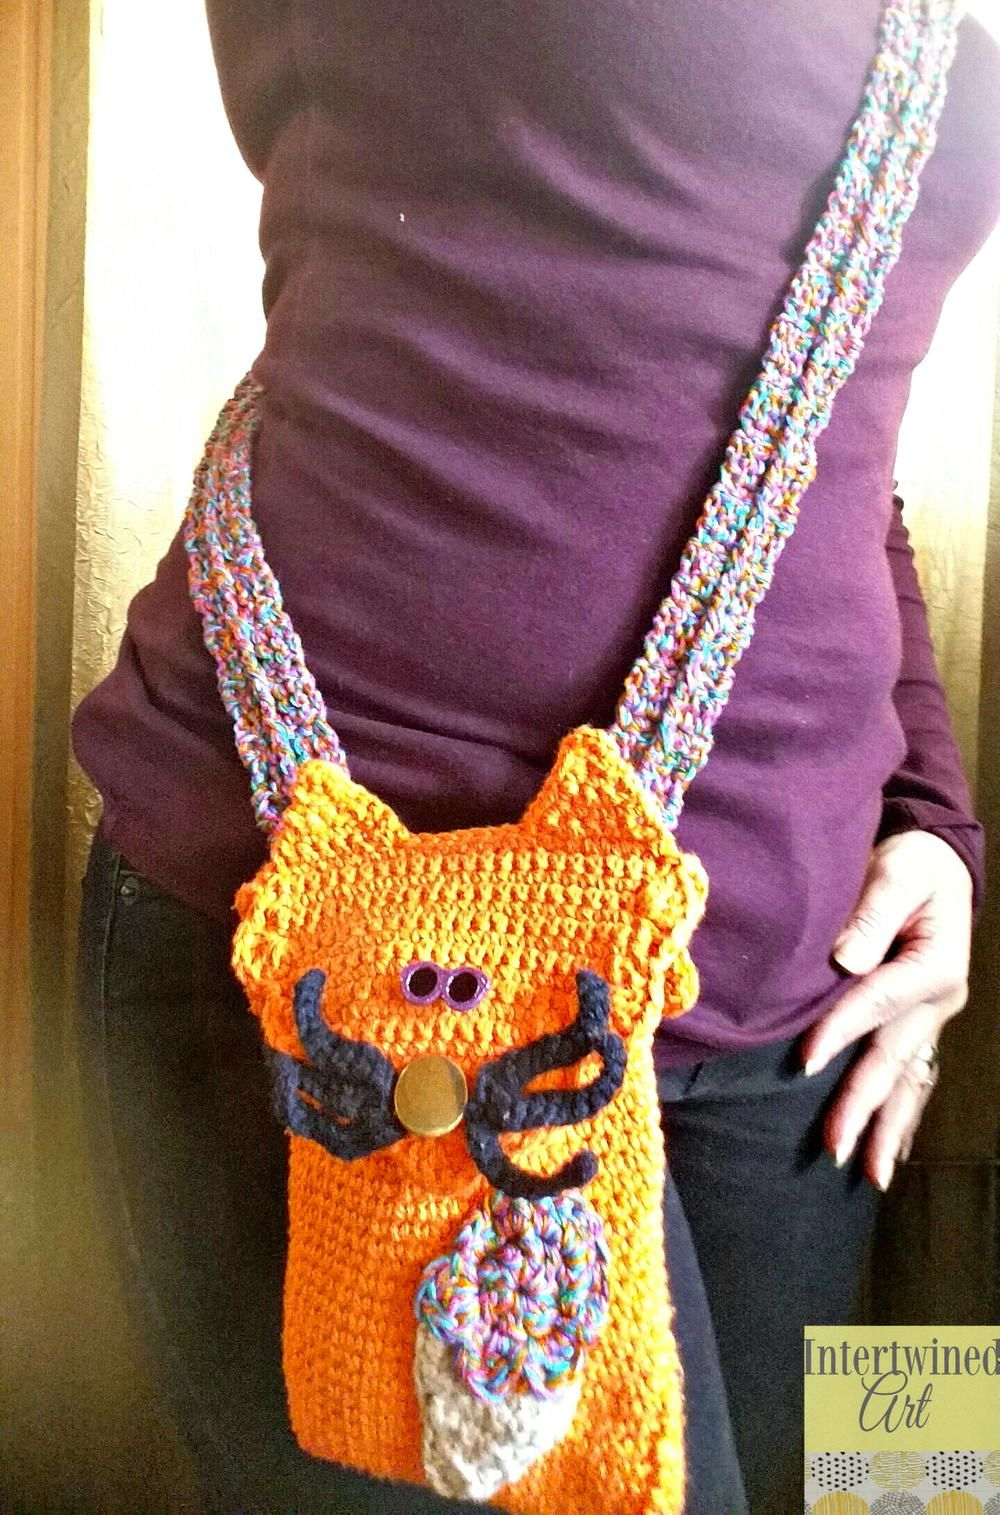 "Sherbert"" the Cat Crochet Mini Hipster Crossbody"